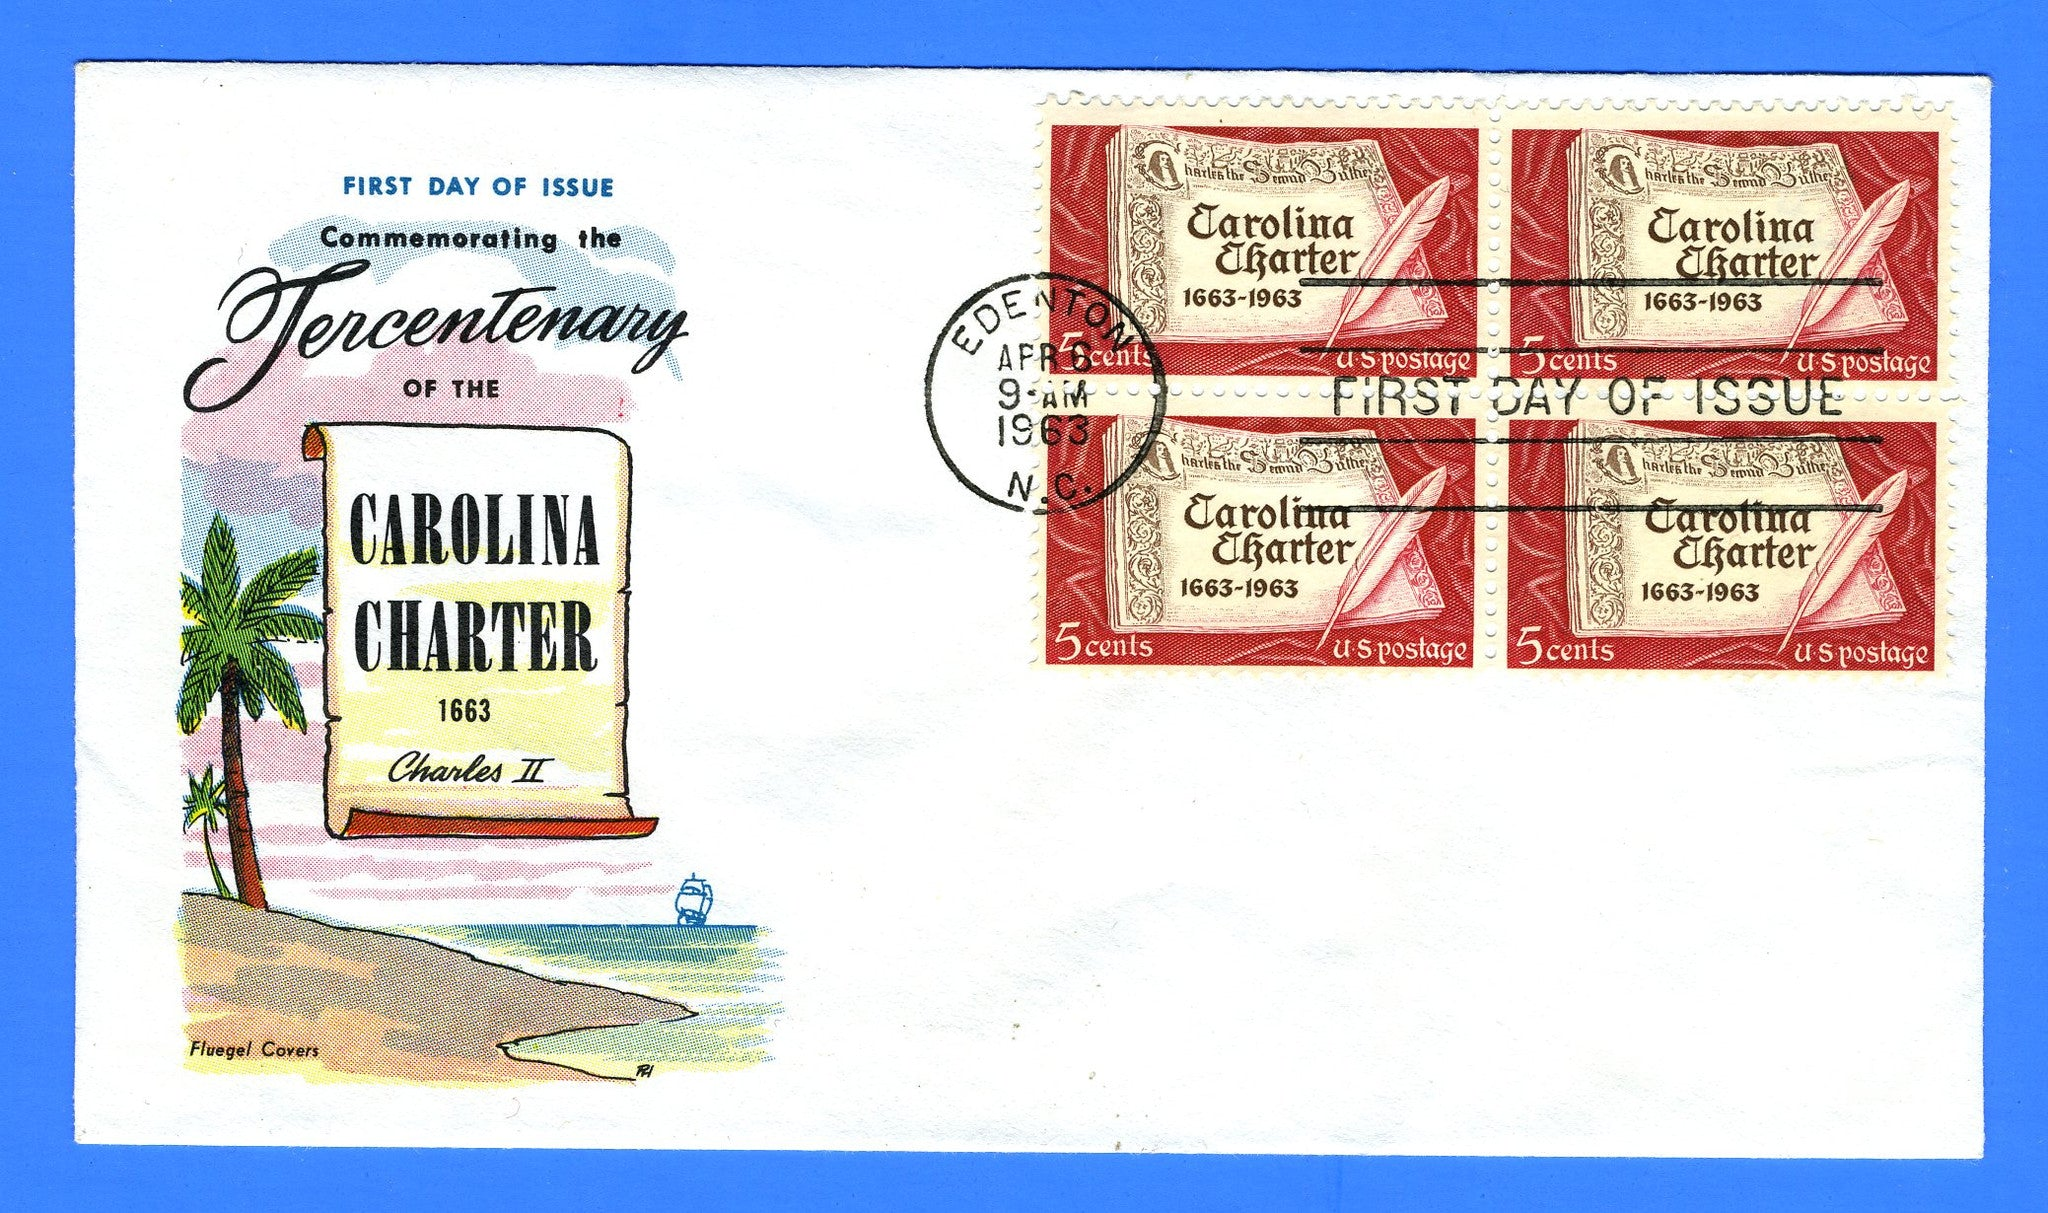 Scott 1230 5c Carolina Charter First Day Cover by Fluegel - Block of 4